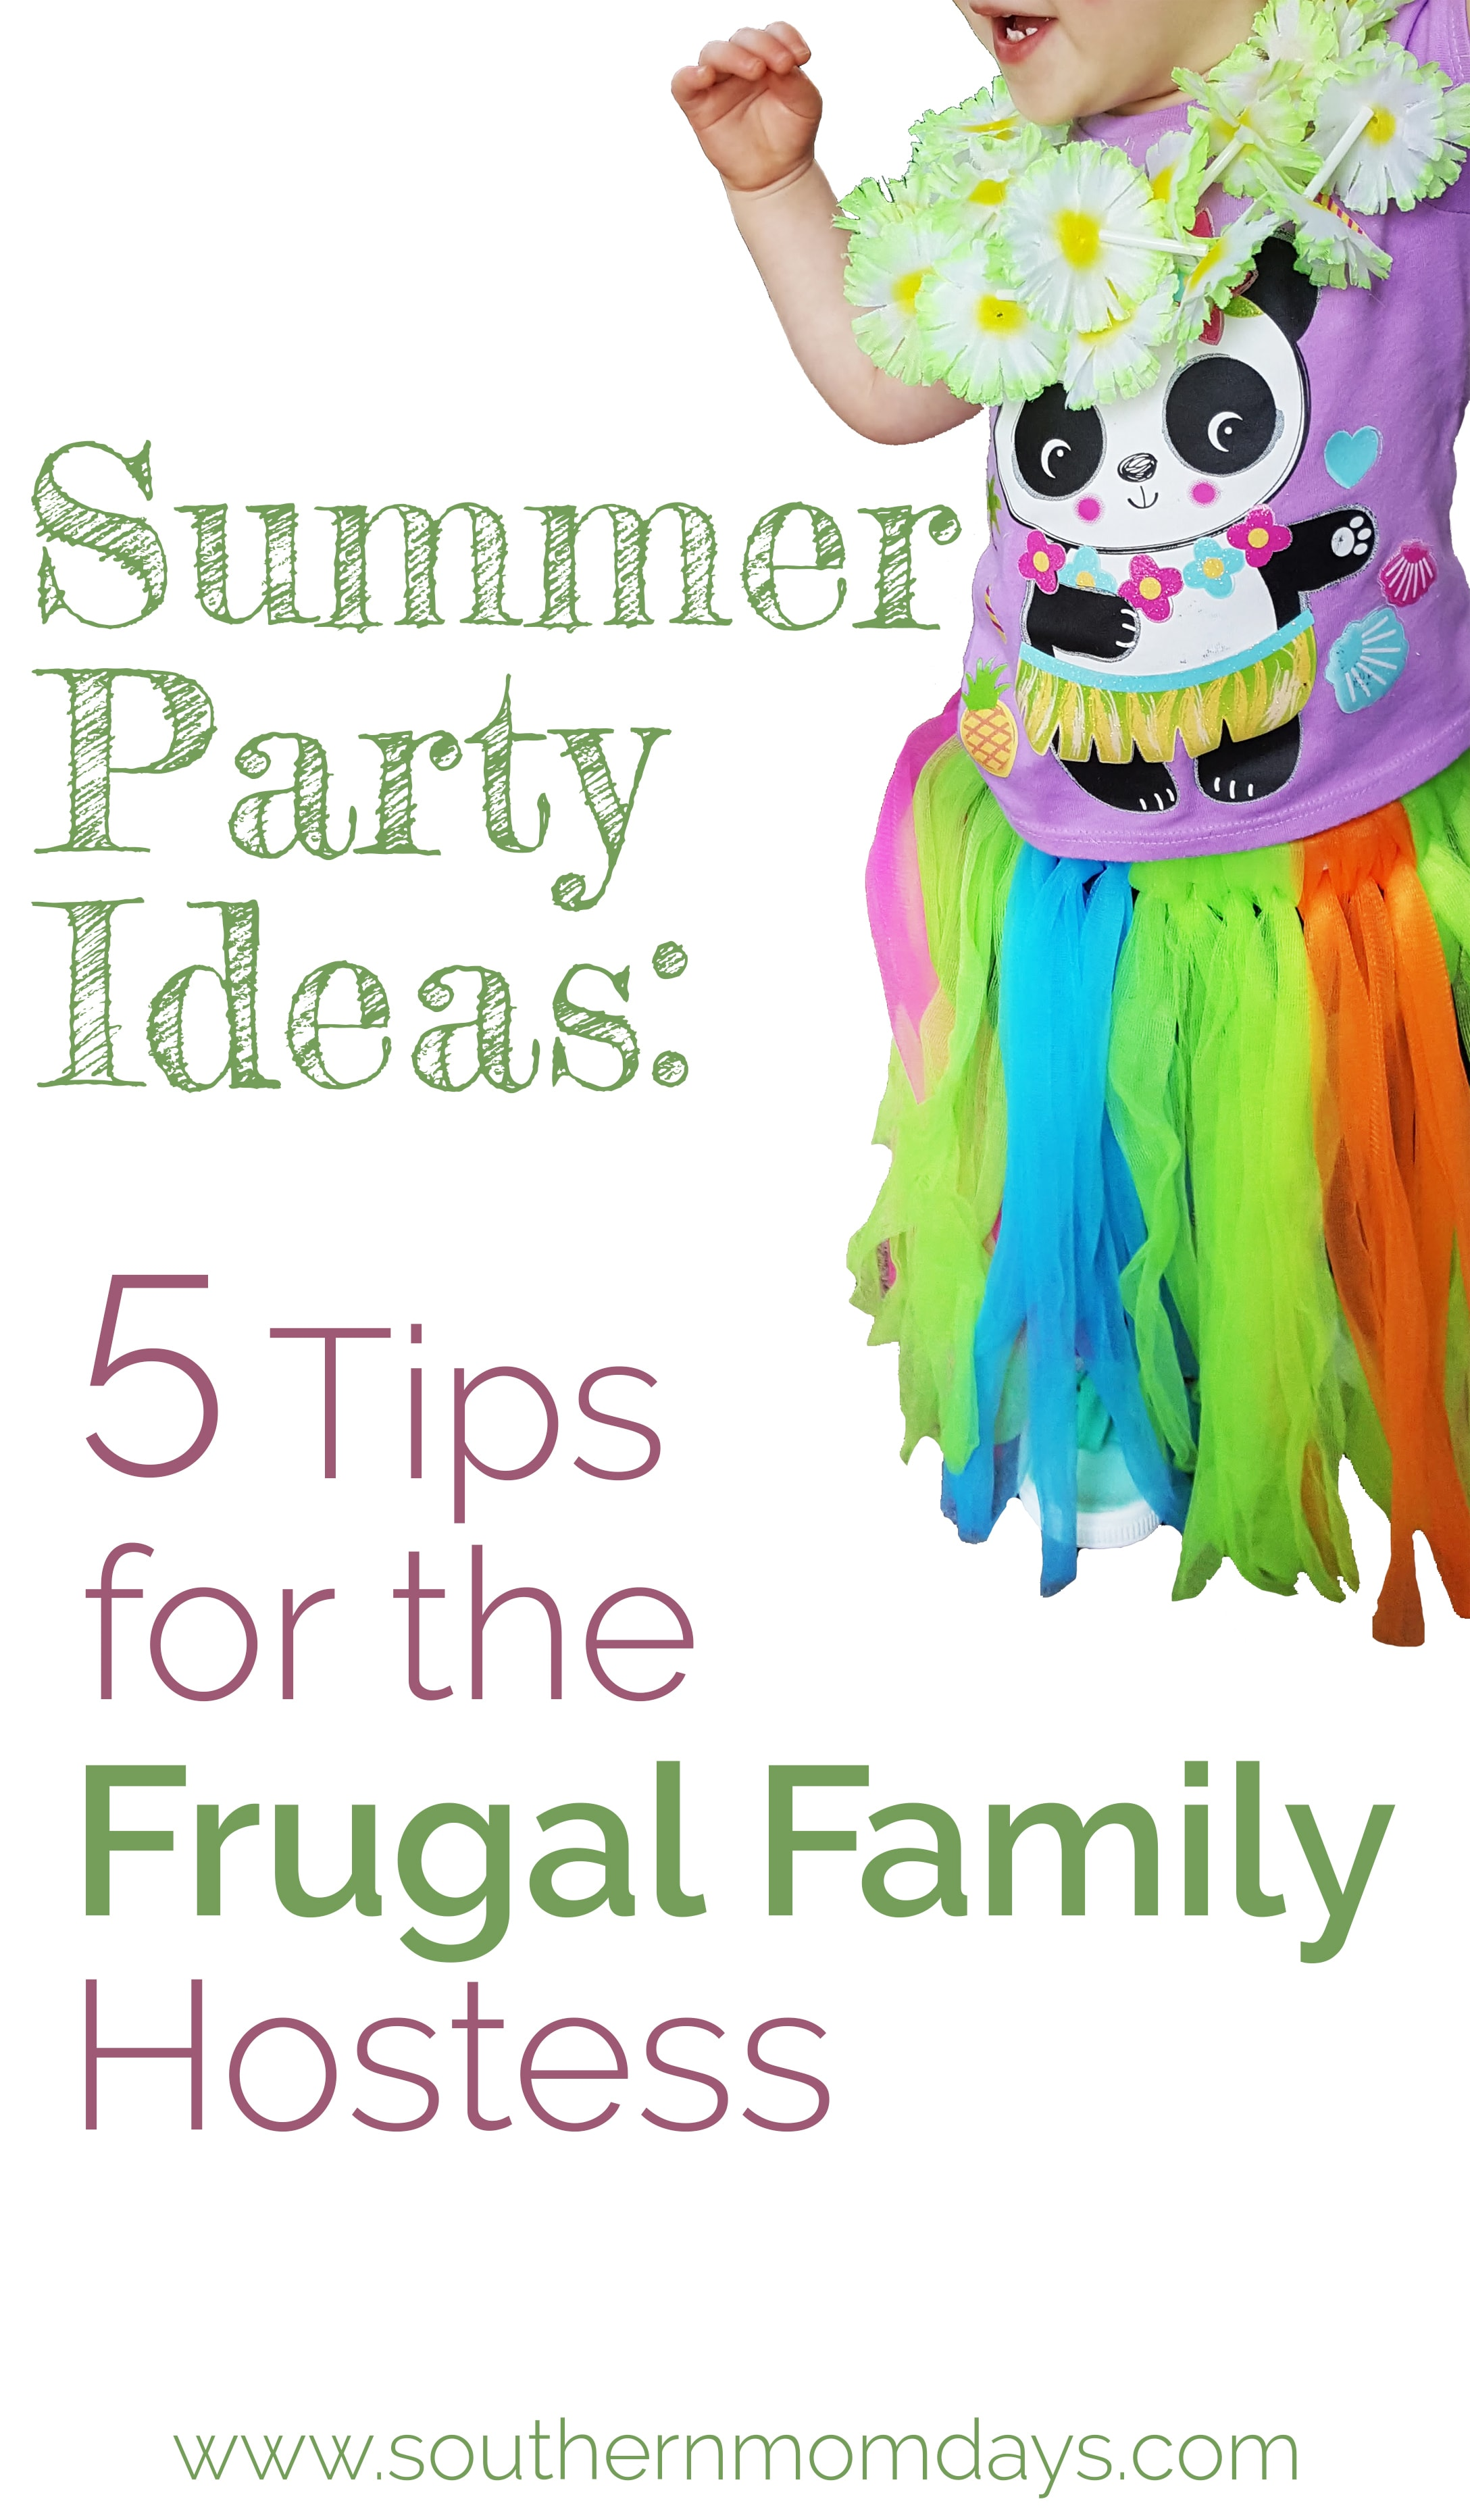 Summer party ideas including 5 tips for the frugal family hostess, featured on the Southern Momdays blog